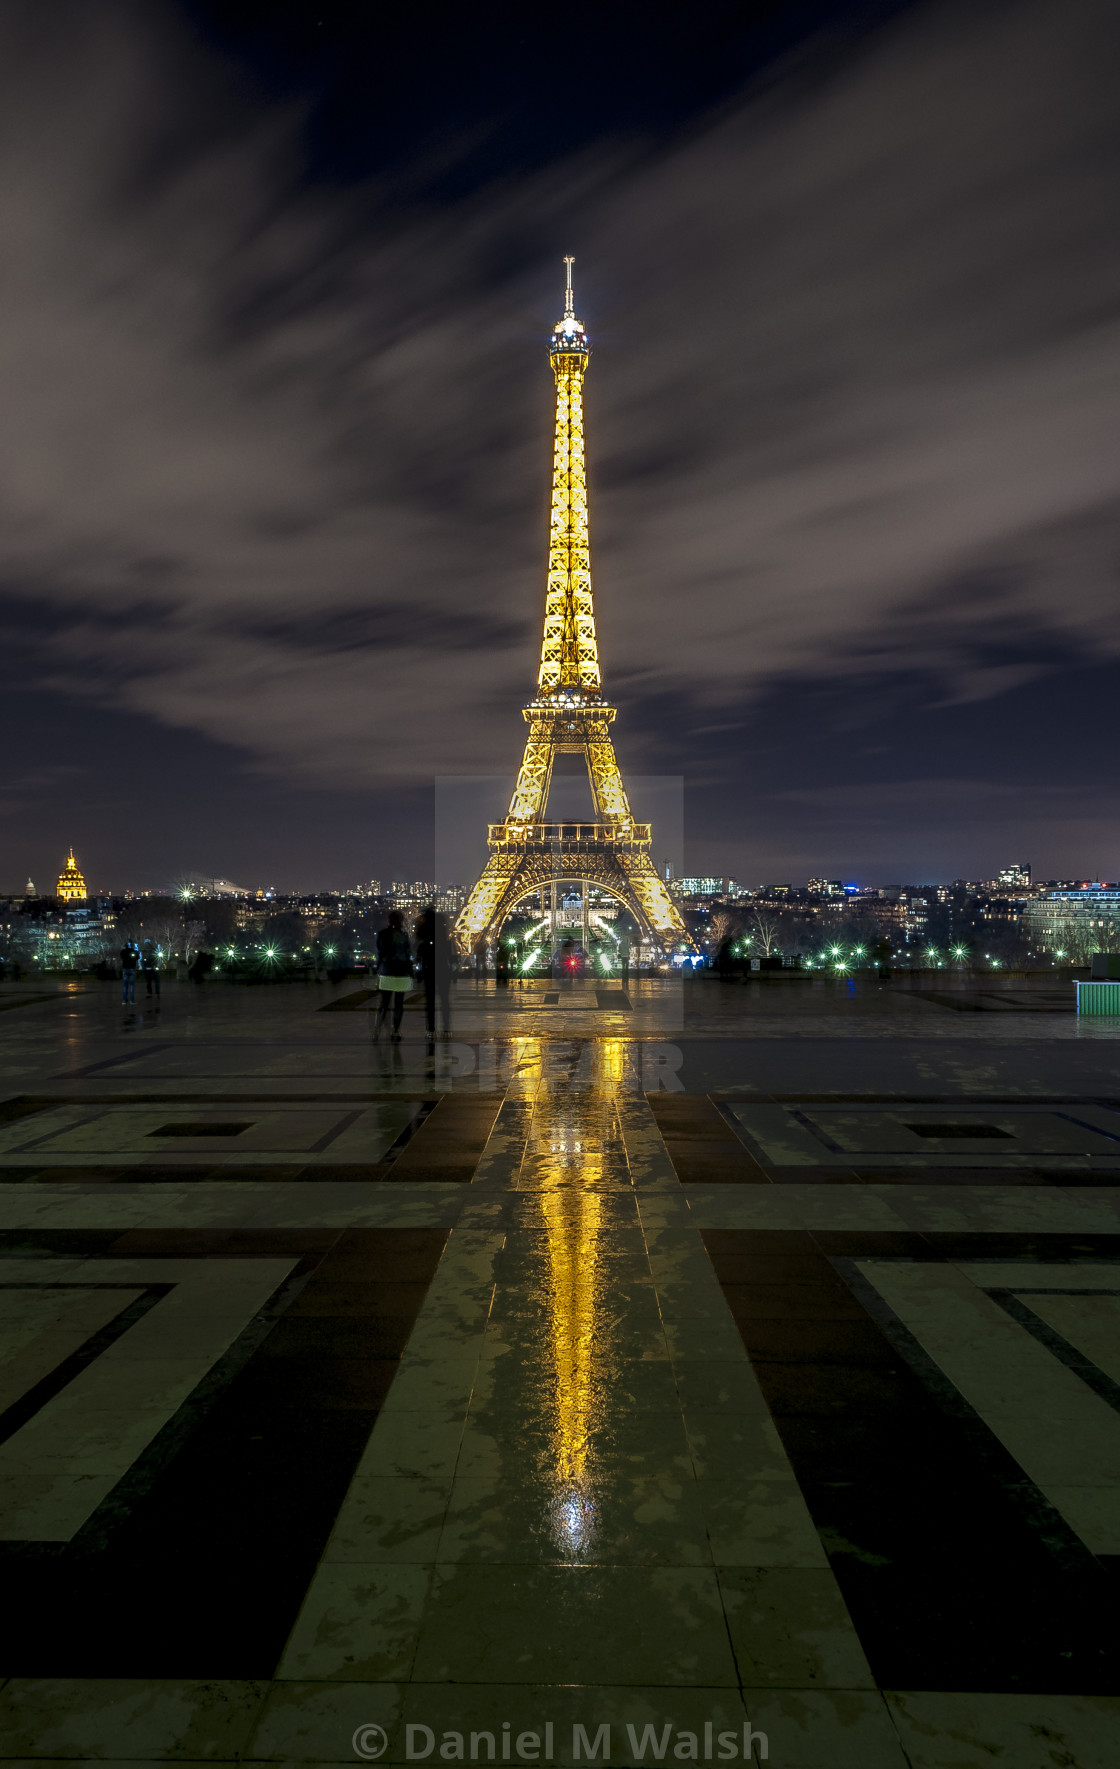 """Eiffel Tower at night with reflection in rainwater"" stock image"